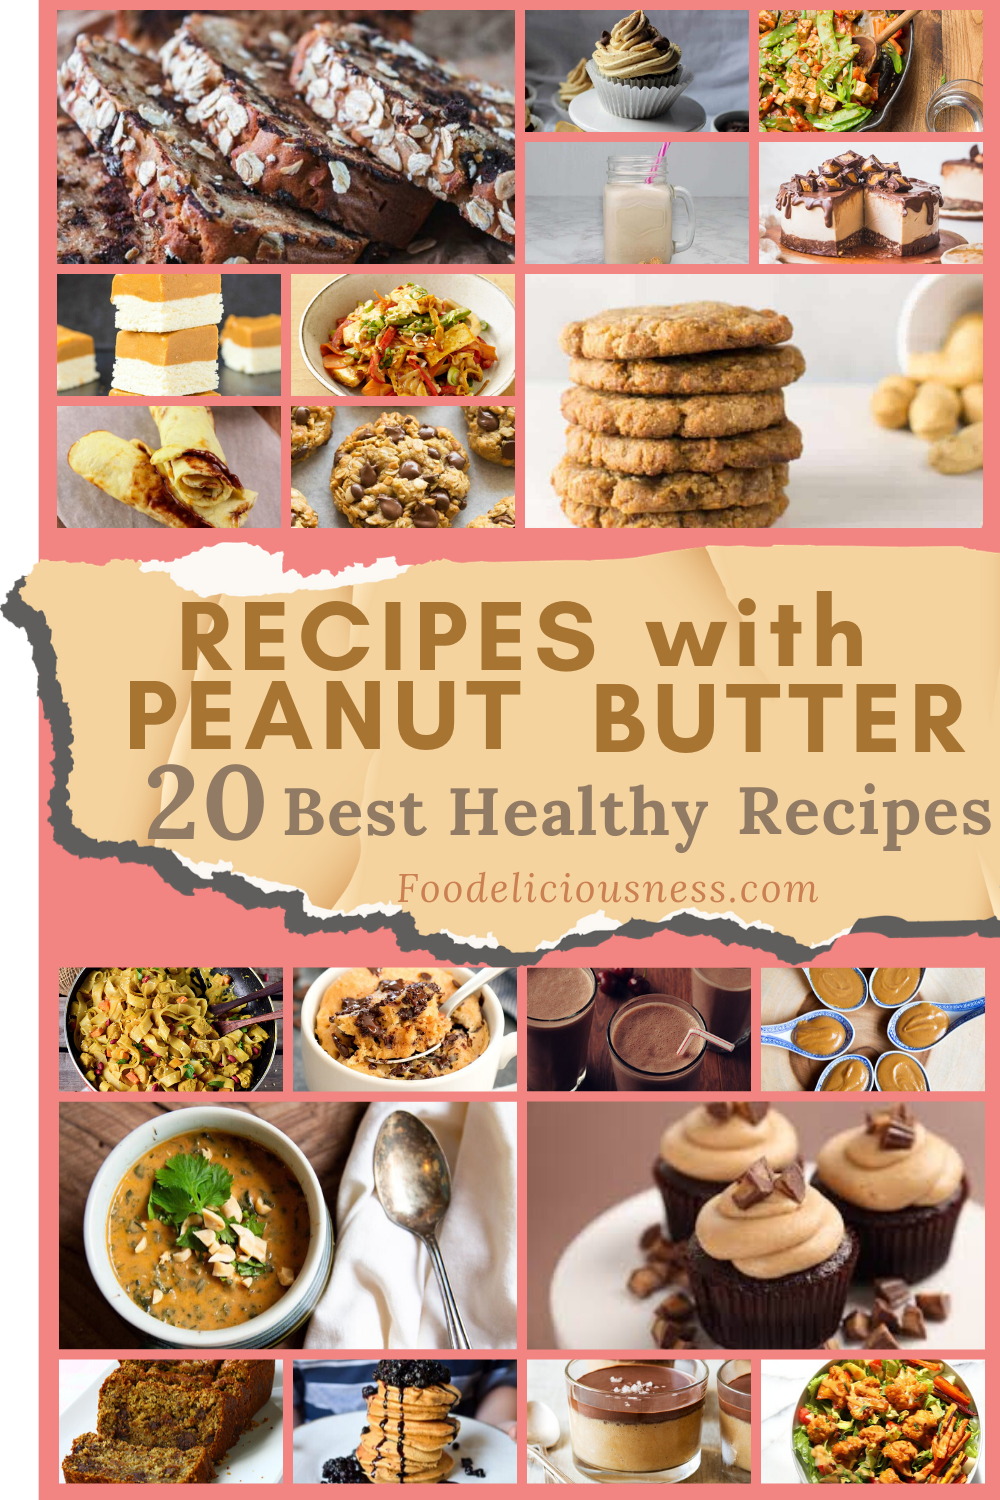 Recipes with Peanut butter are a thing for people who love peanuts and peanut butter. Even those who are not that much into peanut butter will like to learn some recipes too. Here are 20 best healthy recipes with peanut butter that are picked. They are definitely healthy and will fit into your diet. Moreover, they are very tasty and very easy to prepare. #Recipeswithpeanutbutter #deliciouspeanutbutterrecipes @Foodeliciousness